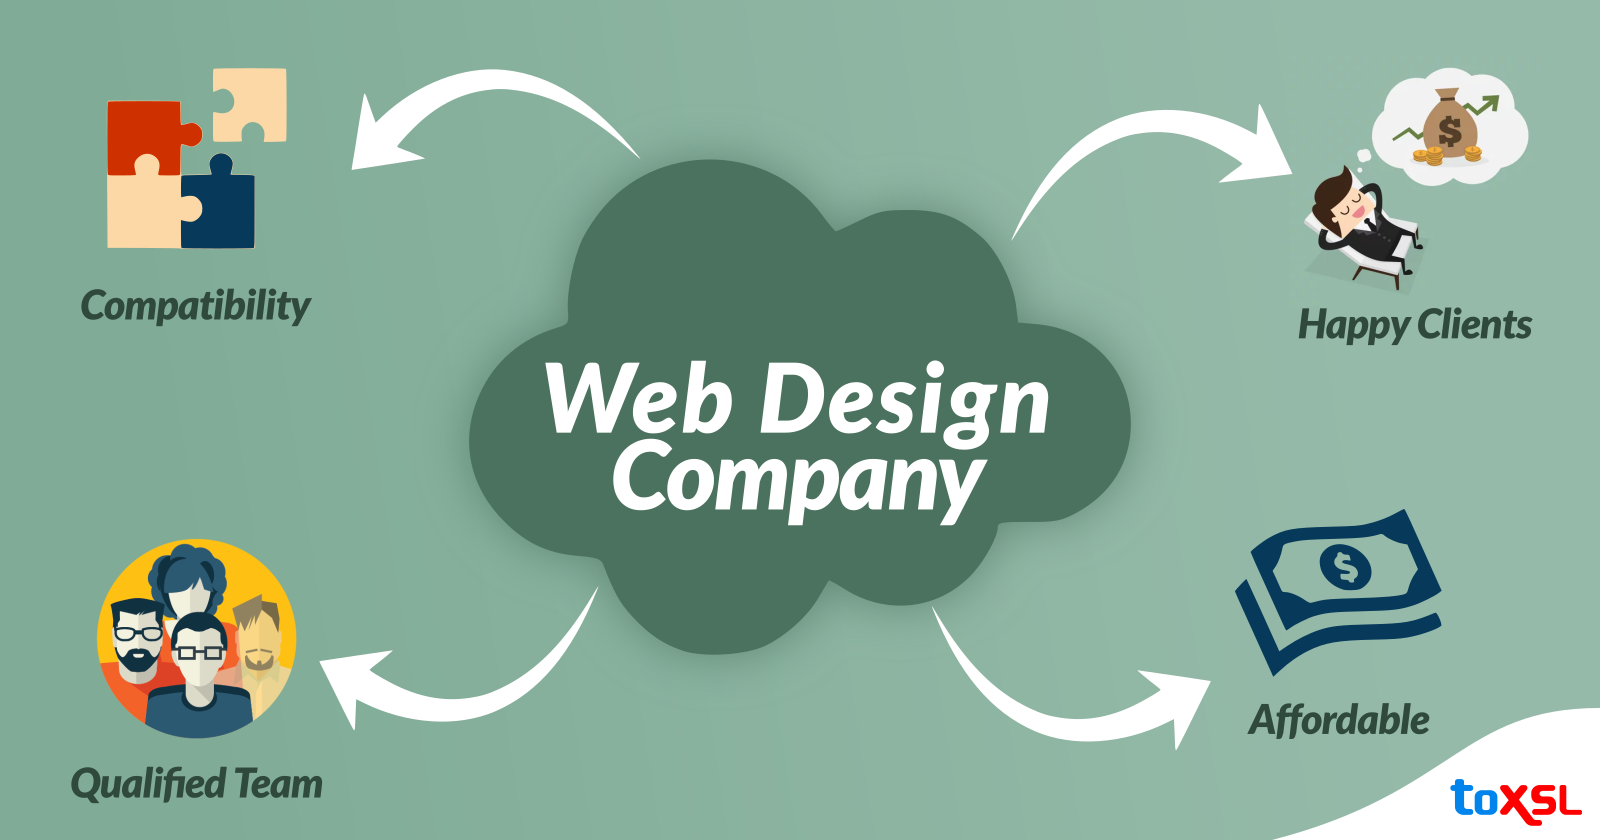 Industry Standards to Consider Before Hiring Web Design Company